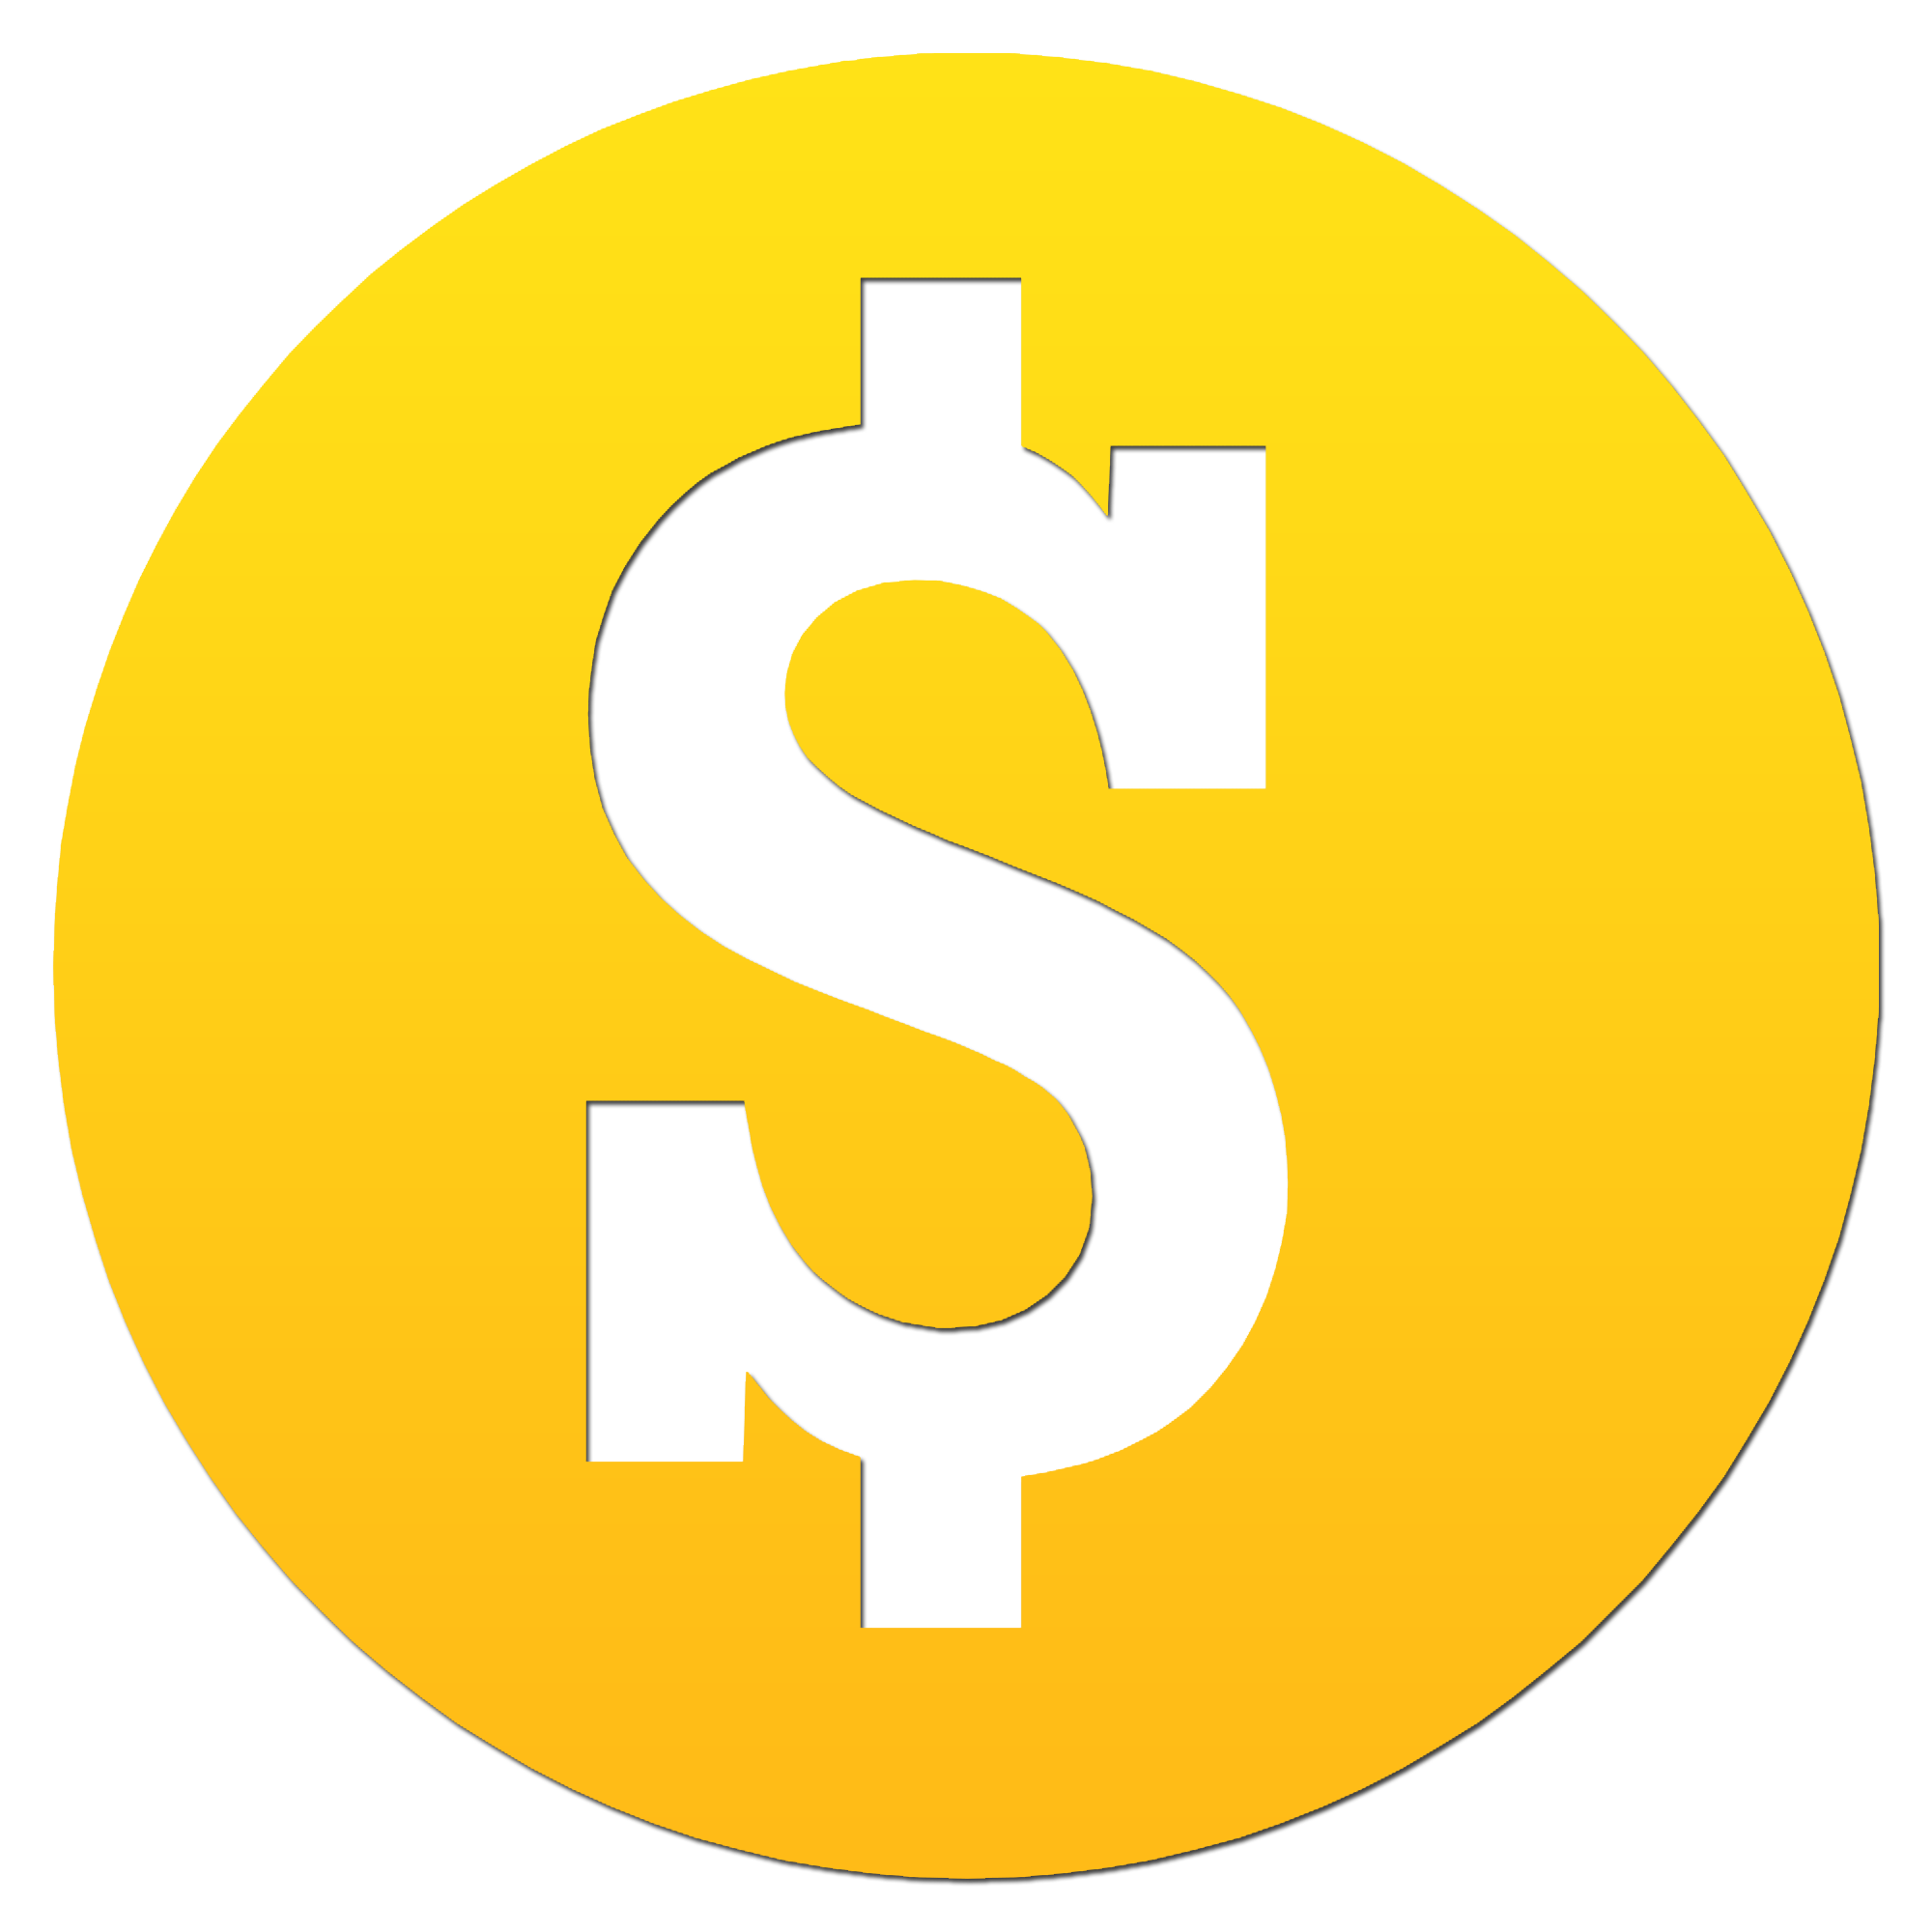 Dollar sign icon png. Photos clipart transparentpng